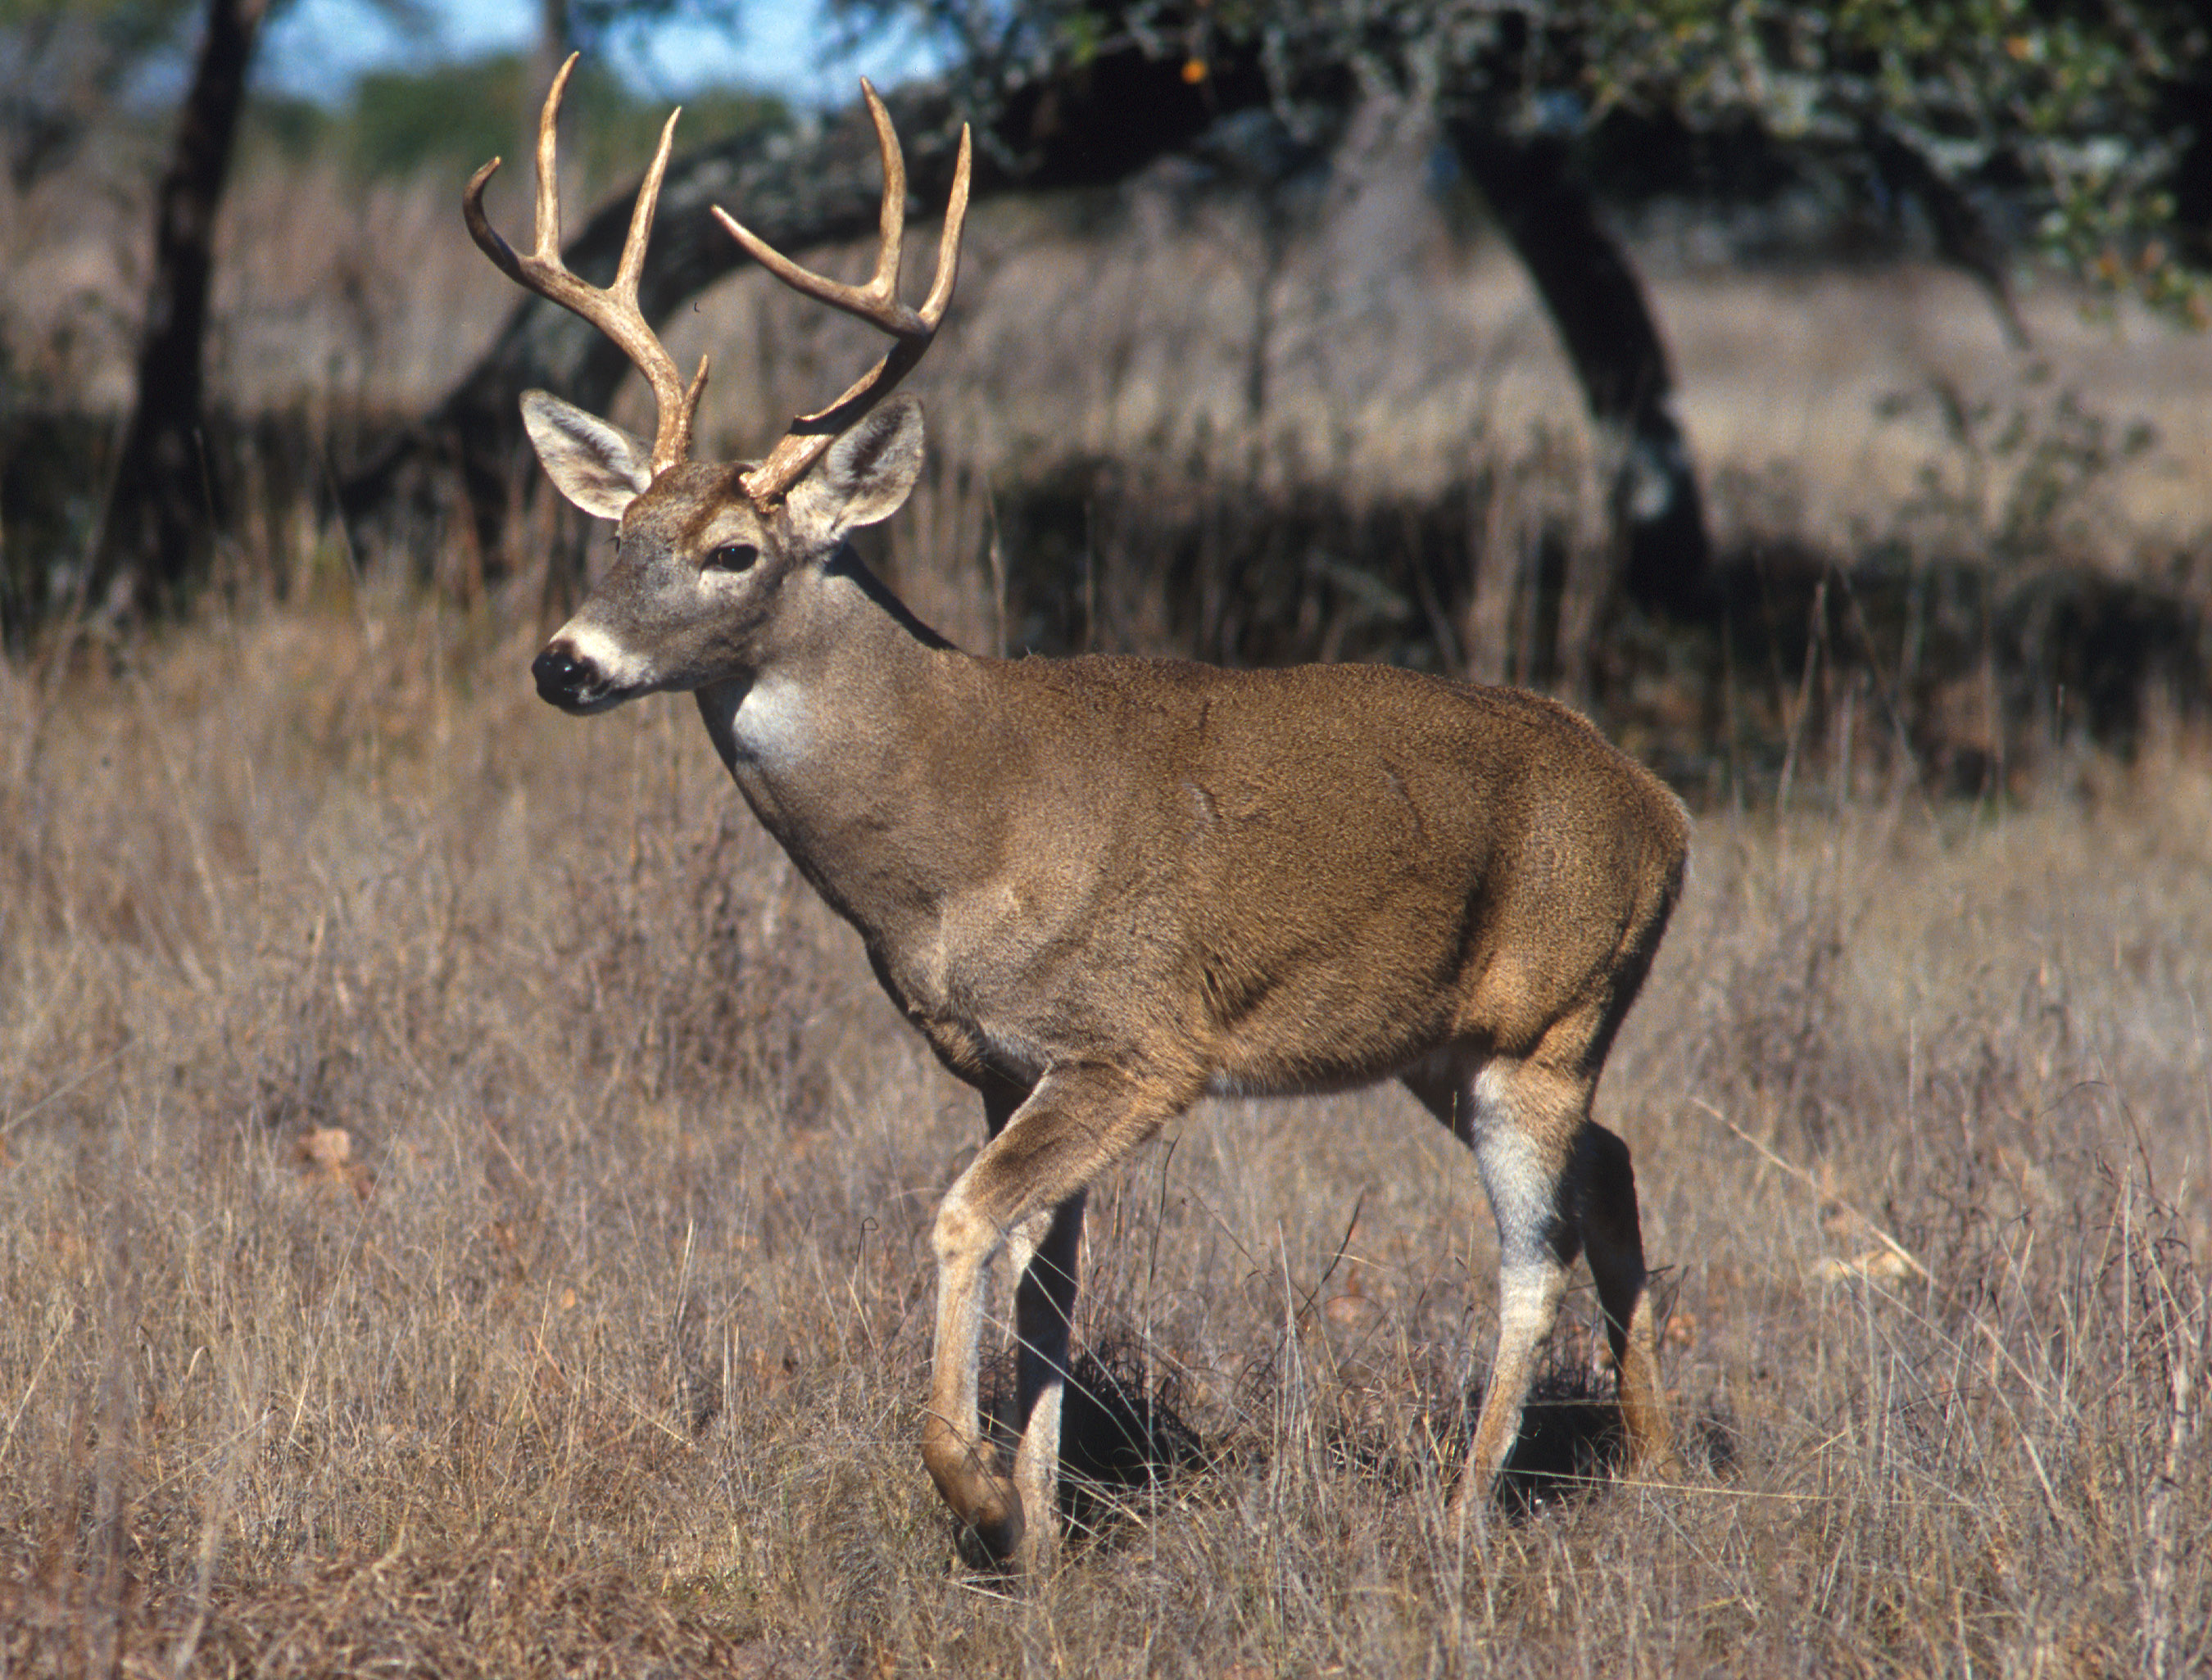 CWD sampling effort leads to proposed containment zone expansion